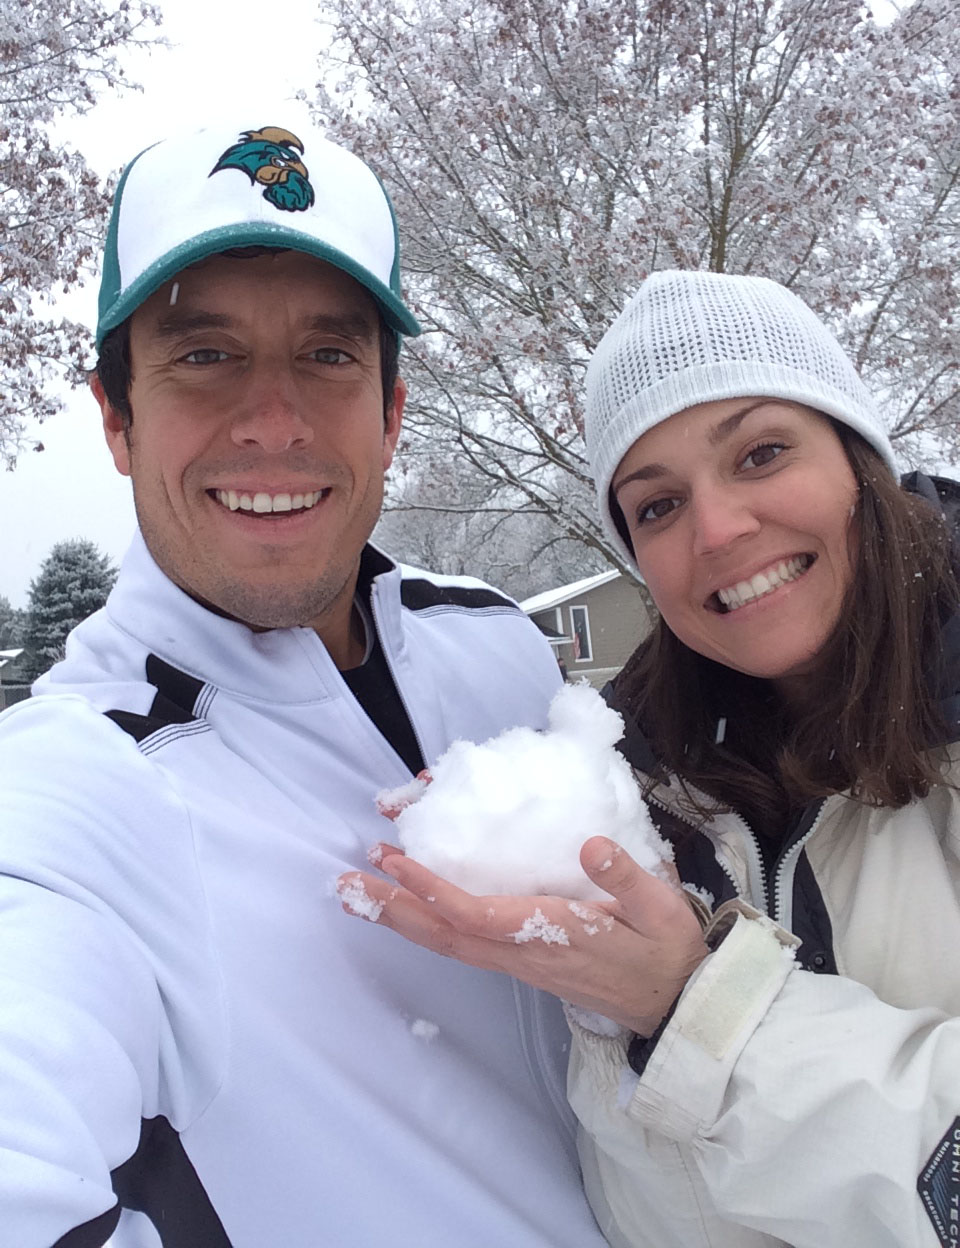 Sidney and I enjoying the snow together.